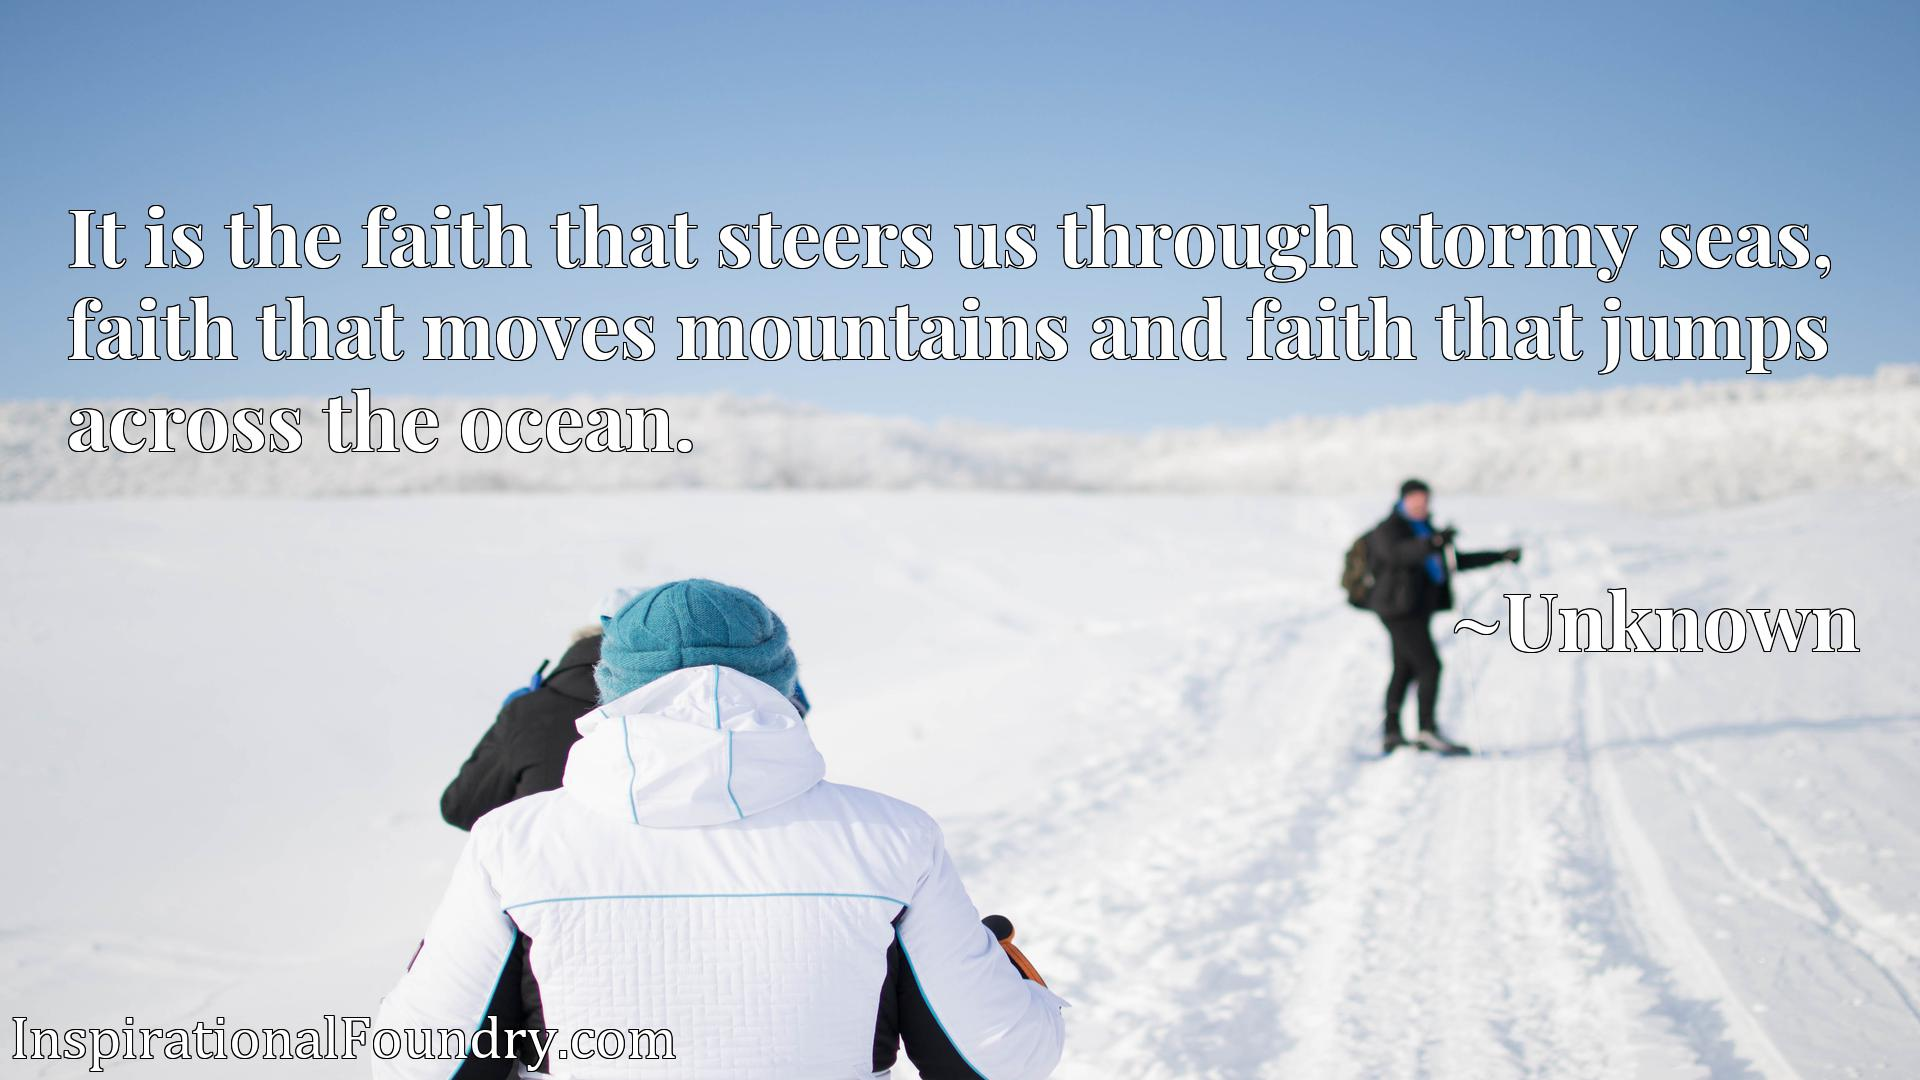 It is the faith that steers us through stormy seas, faith that moves mountains and faith that jumps across the ocean.